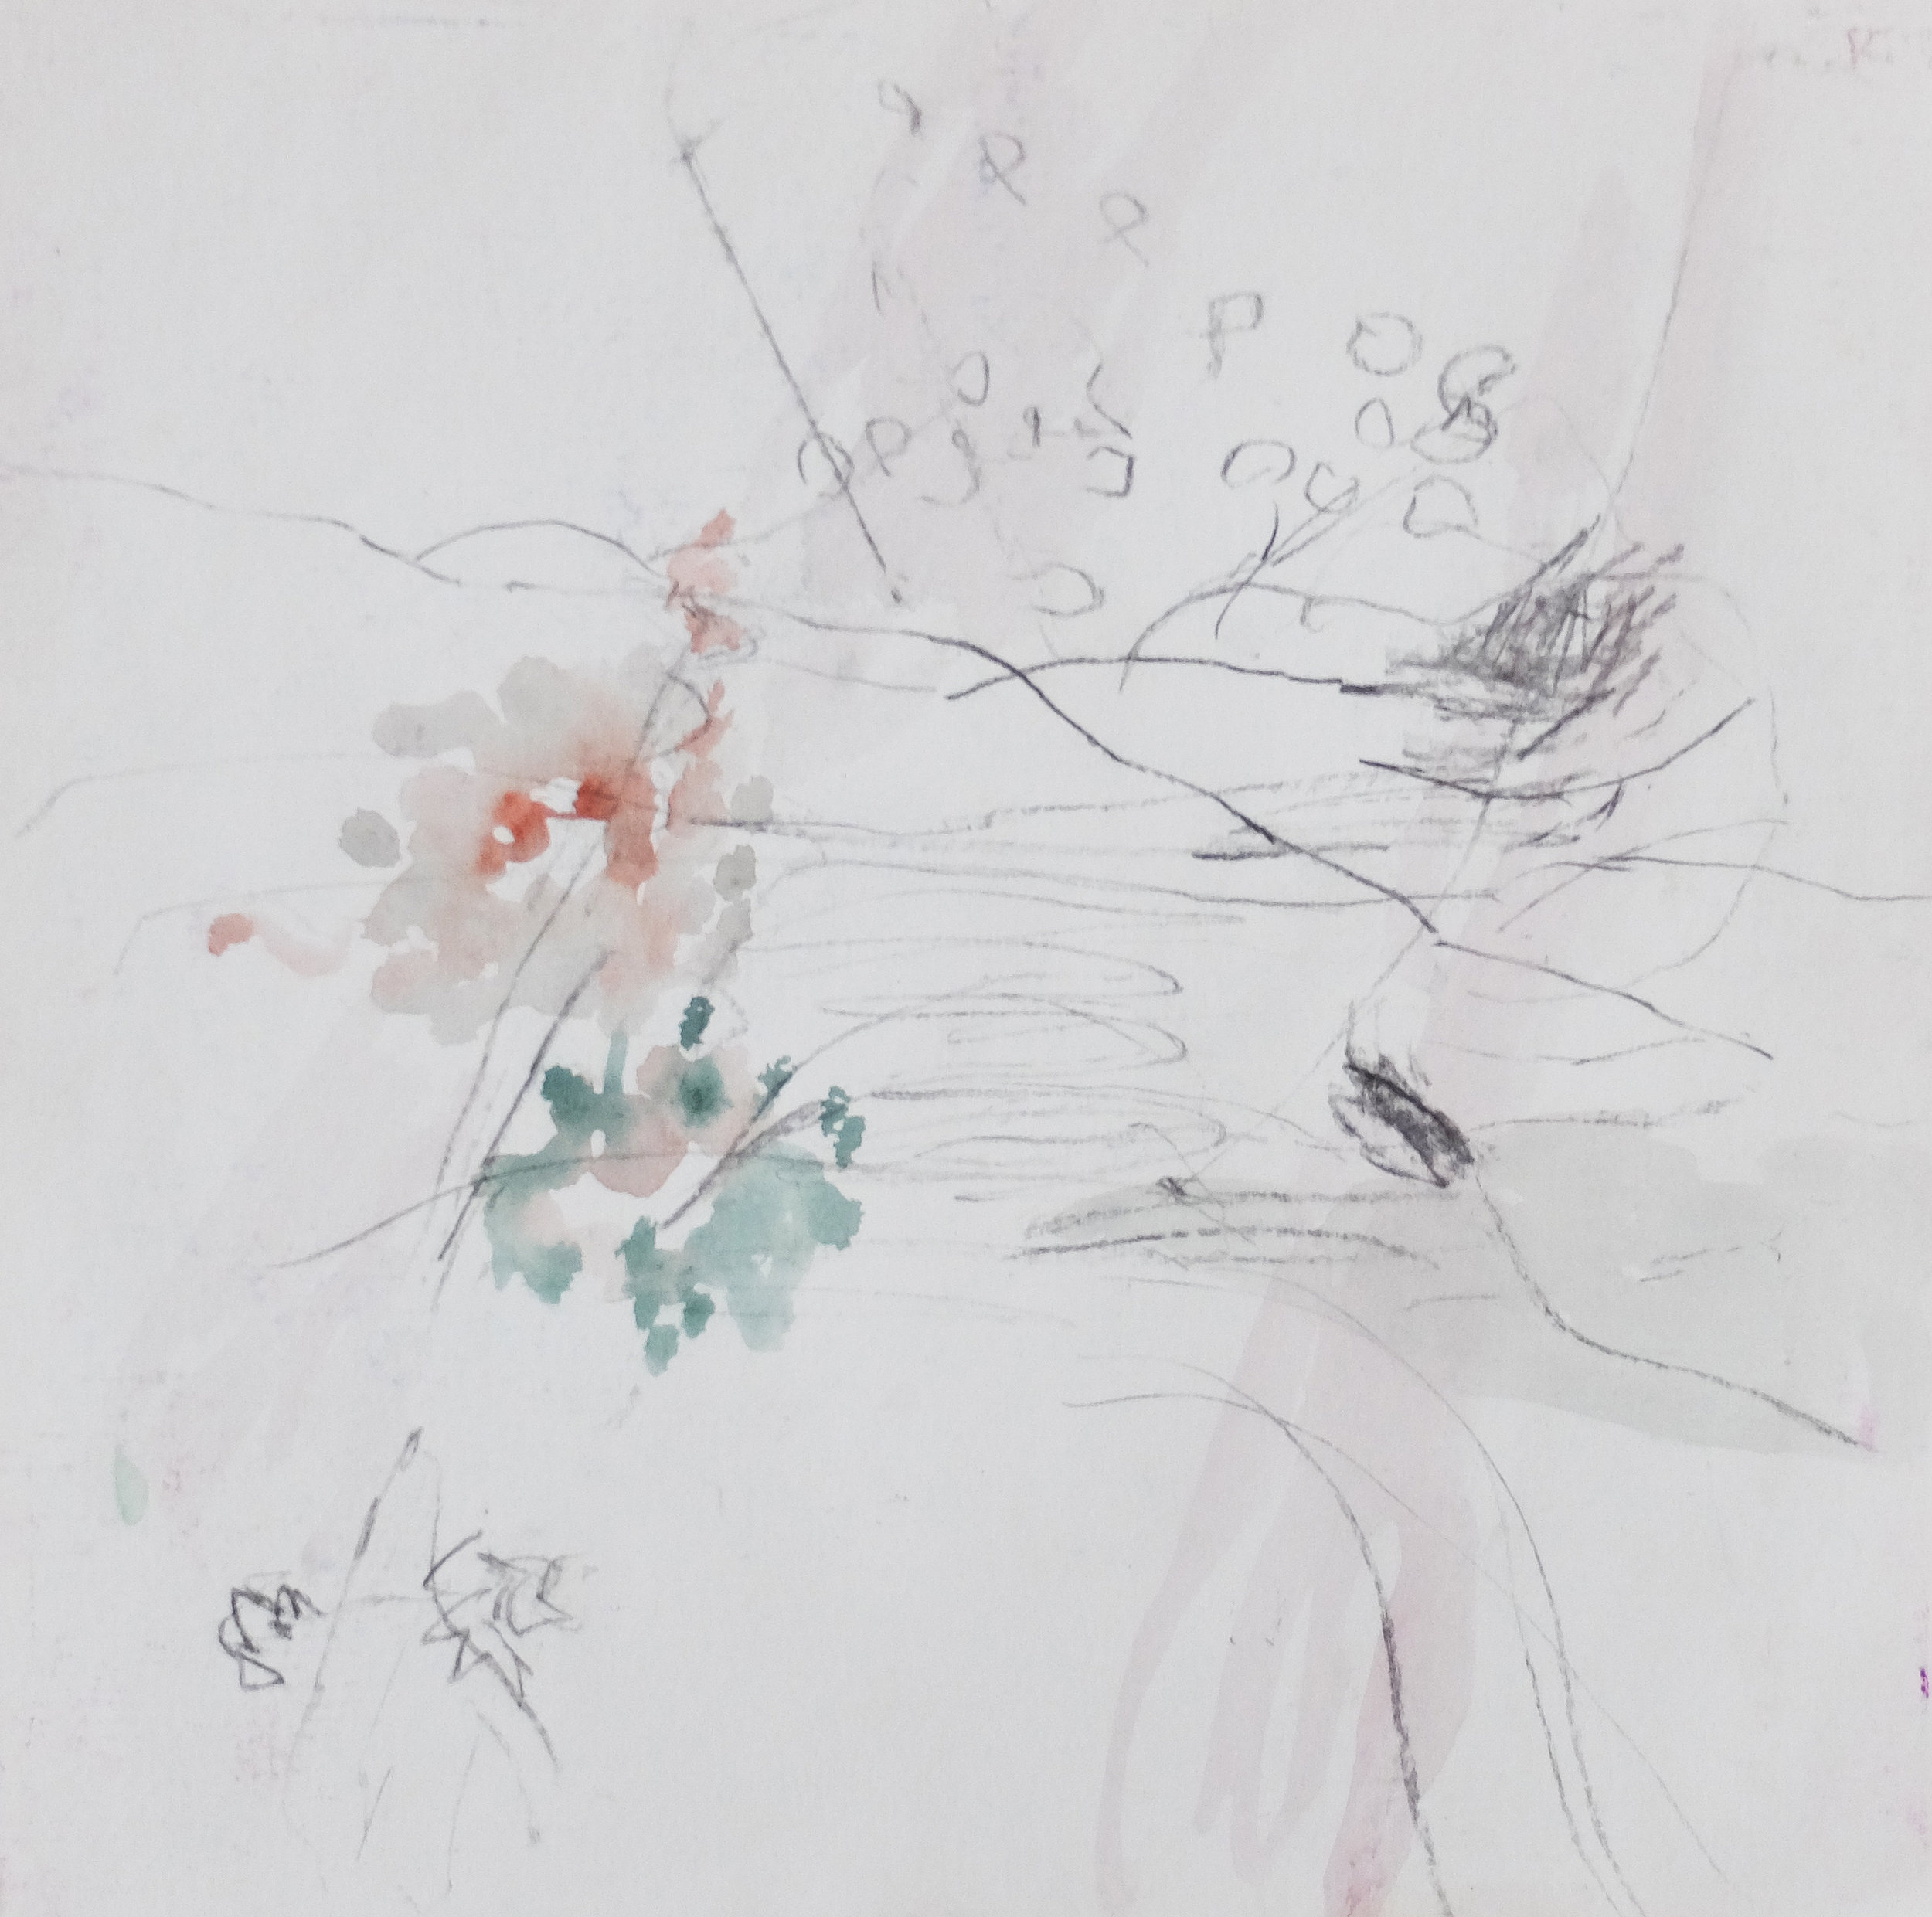 Untitled 8, 2015, Water colour, pencil on paper, 20 x 20 cm